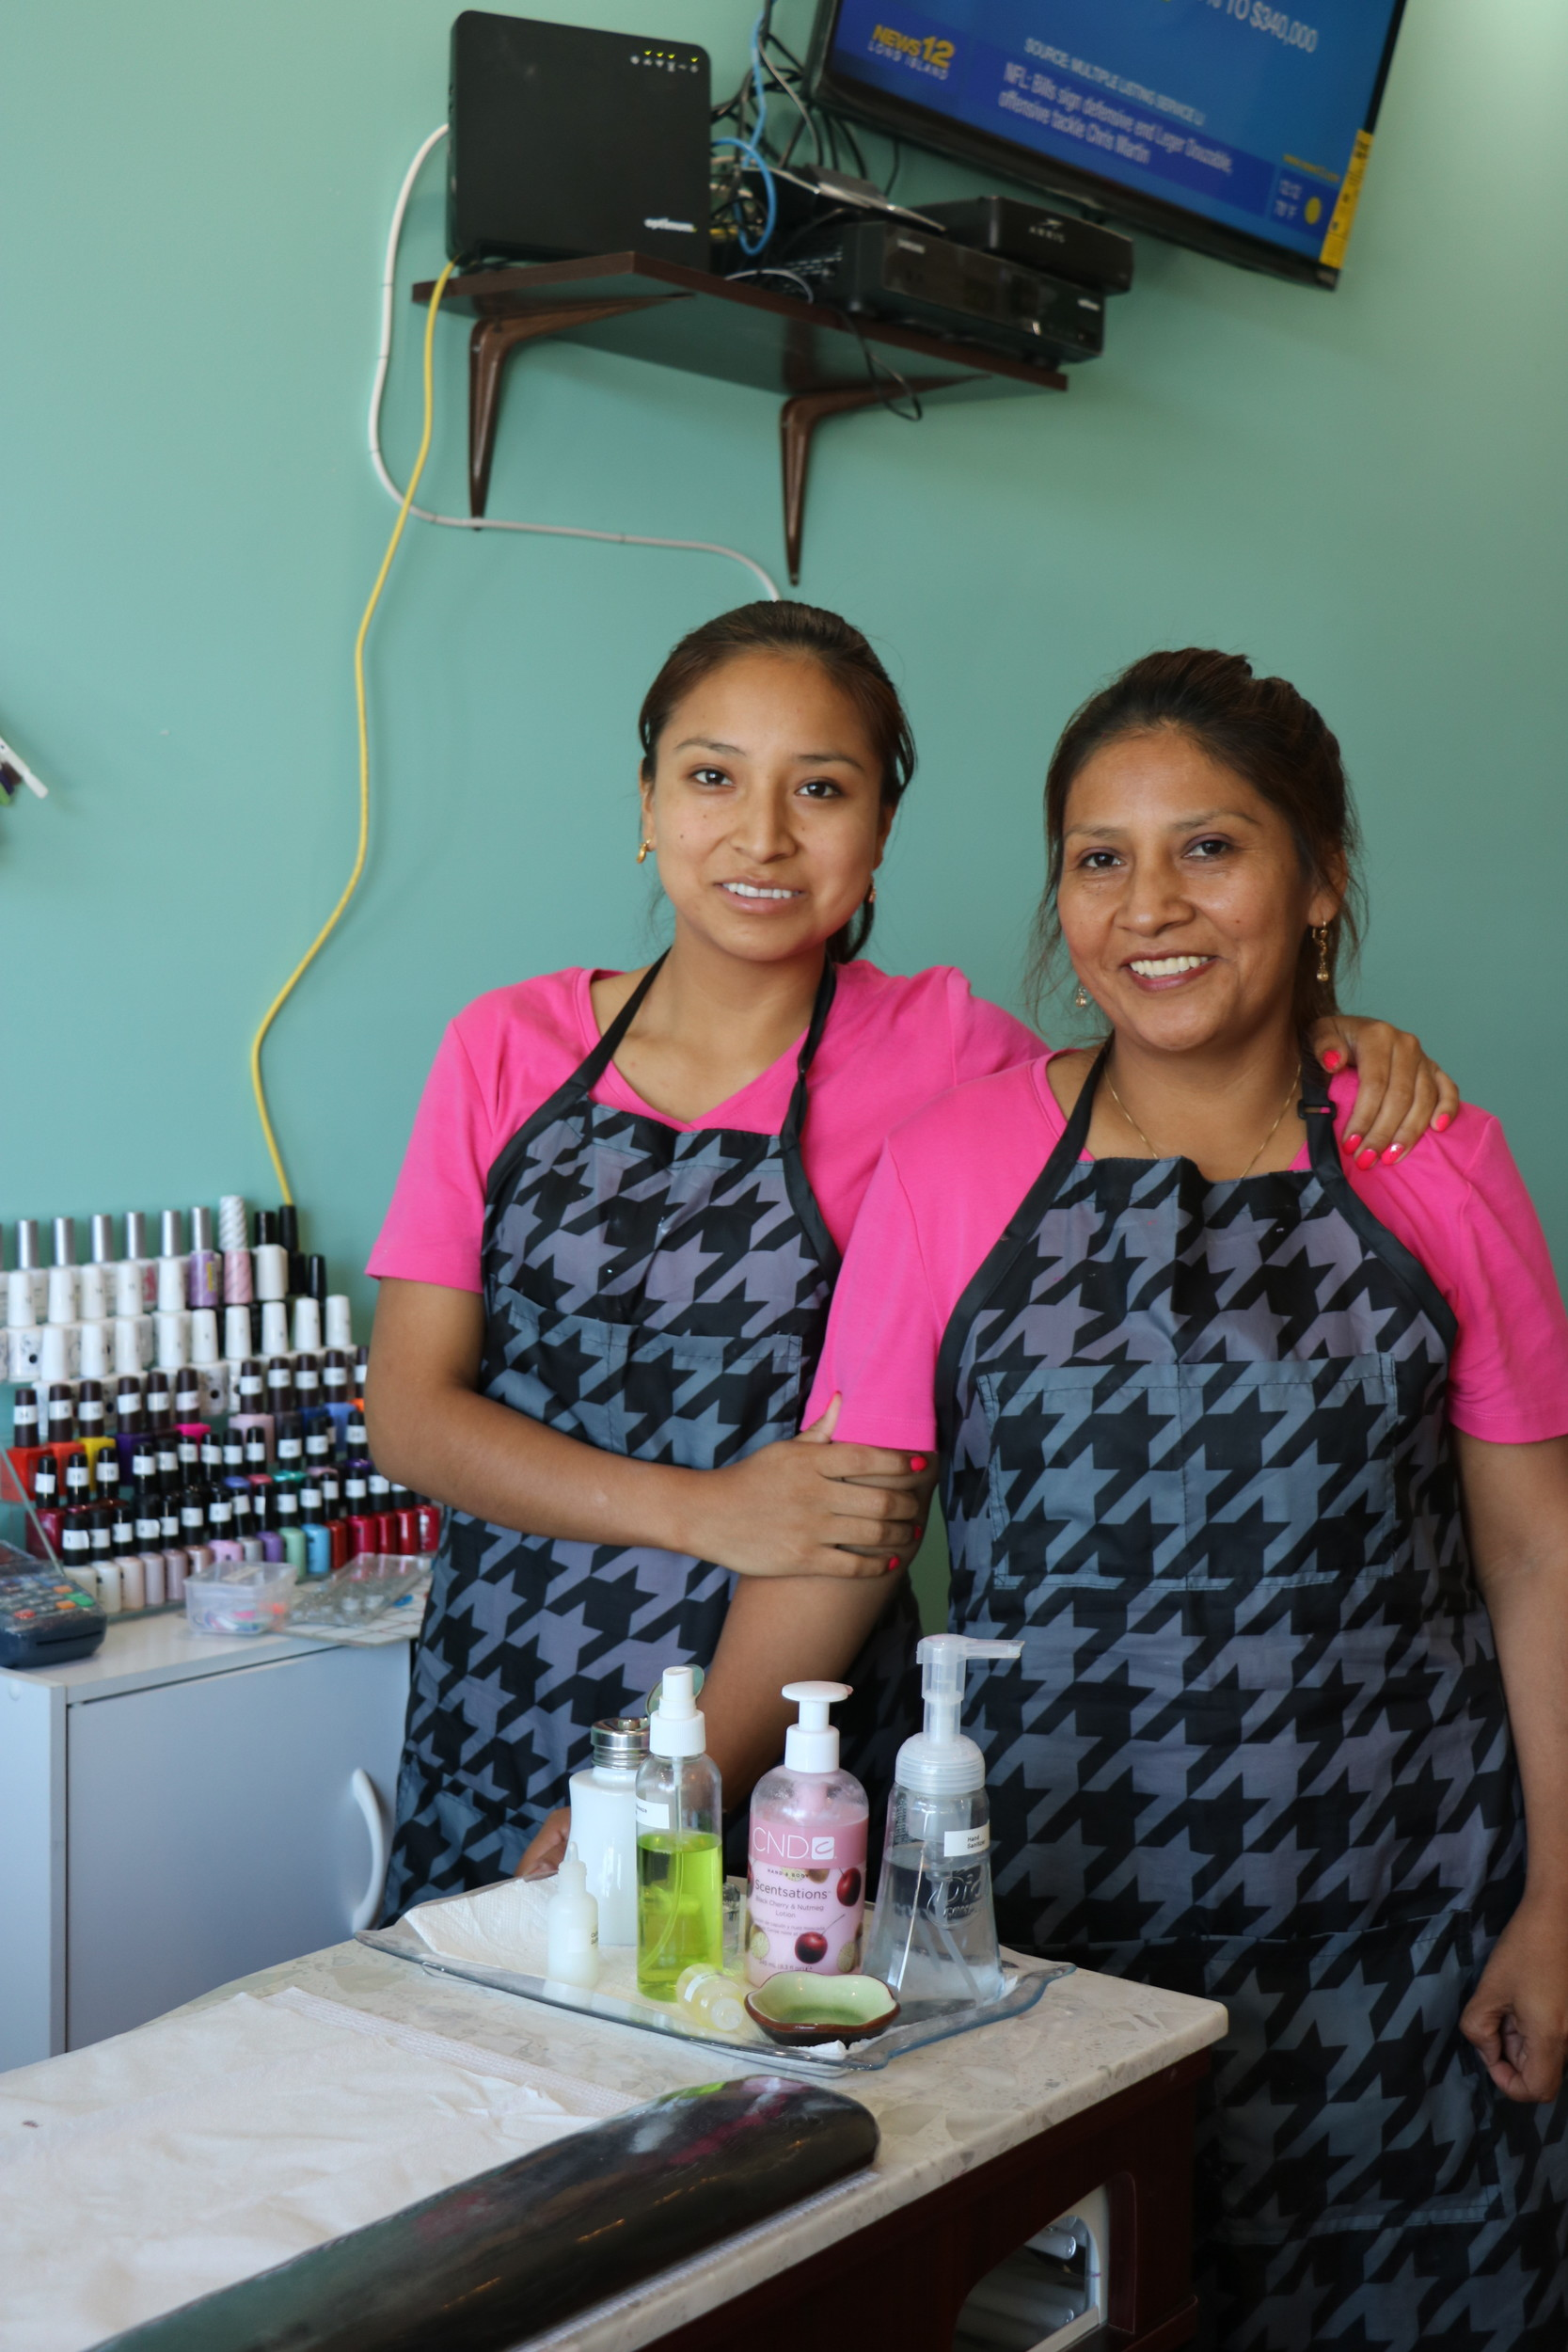 Maria Lhicay came to the United States from Ecuador with her daughter Miriam. Together they run The Diva Salon in Island Park.